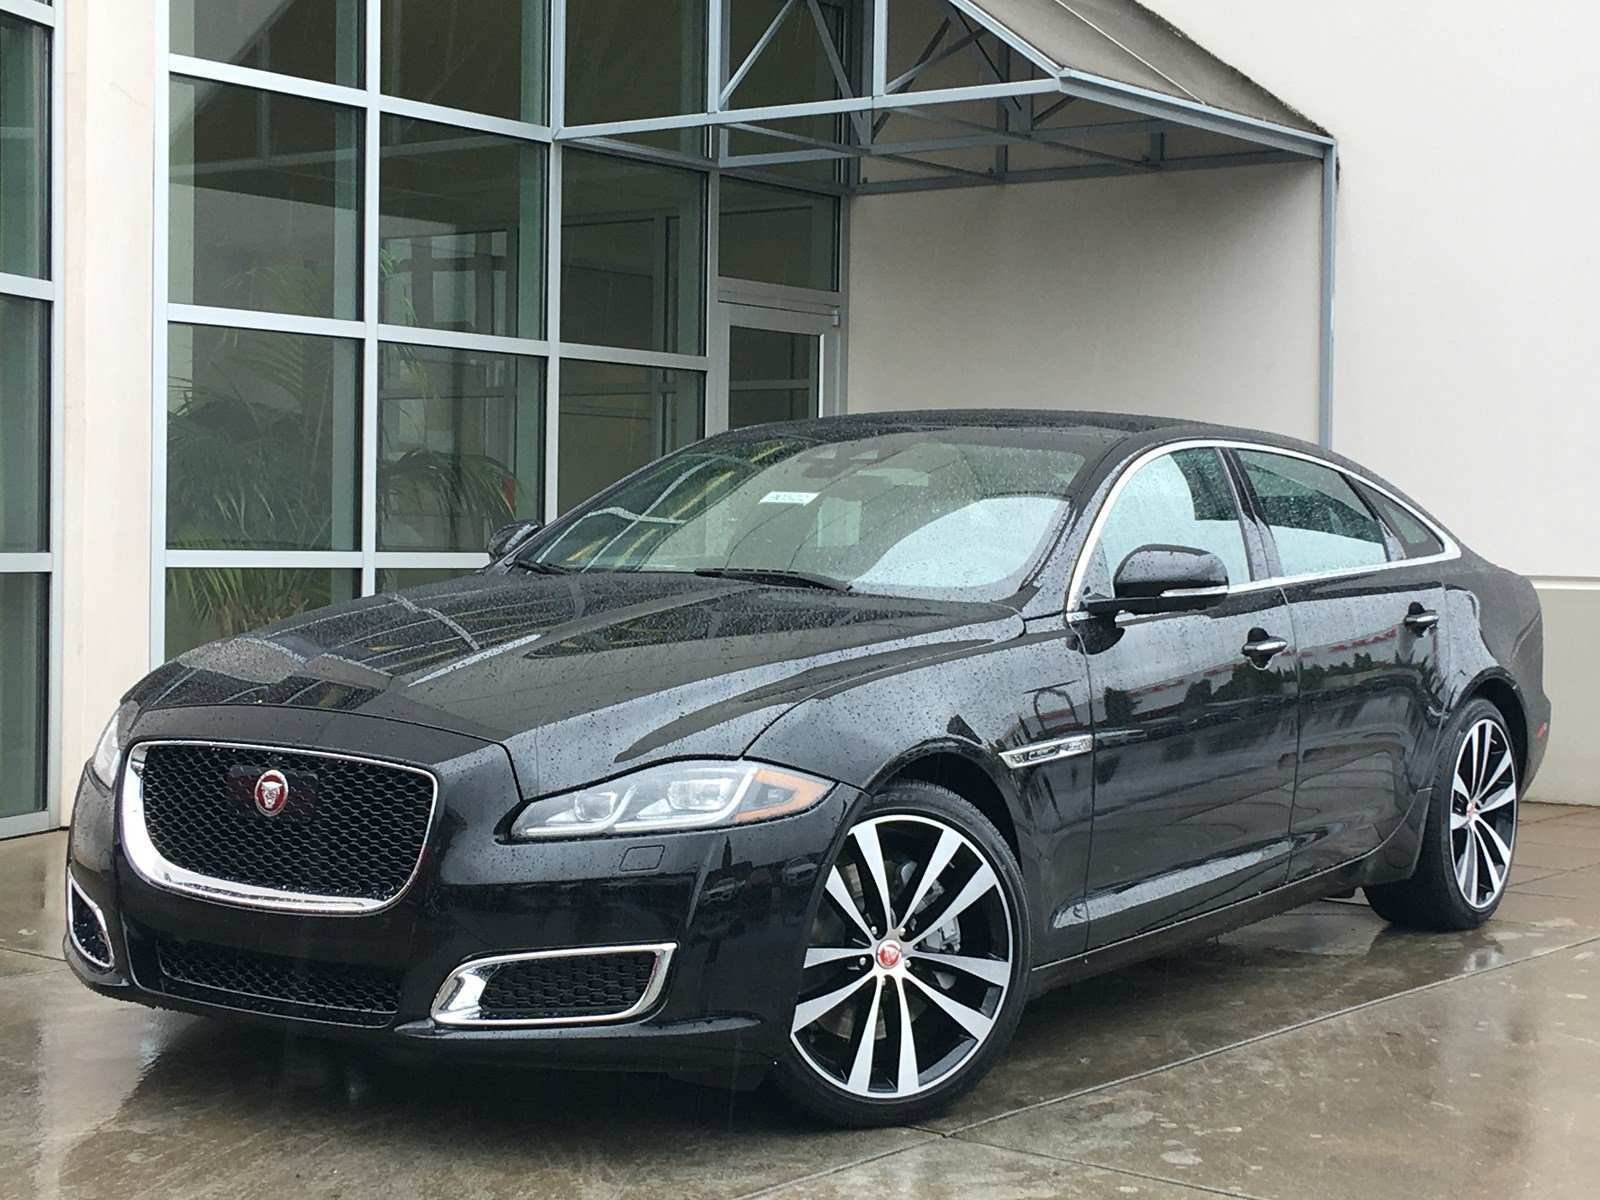 91 The Best Xj Jaguar 2019 Pricing